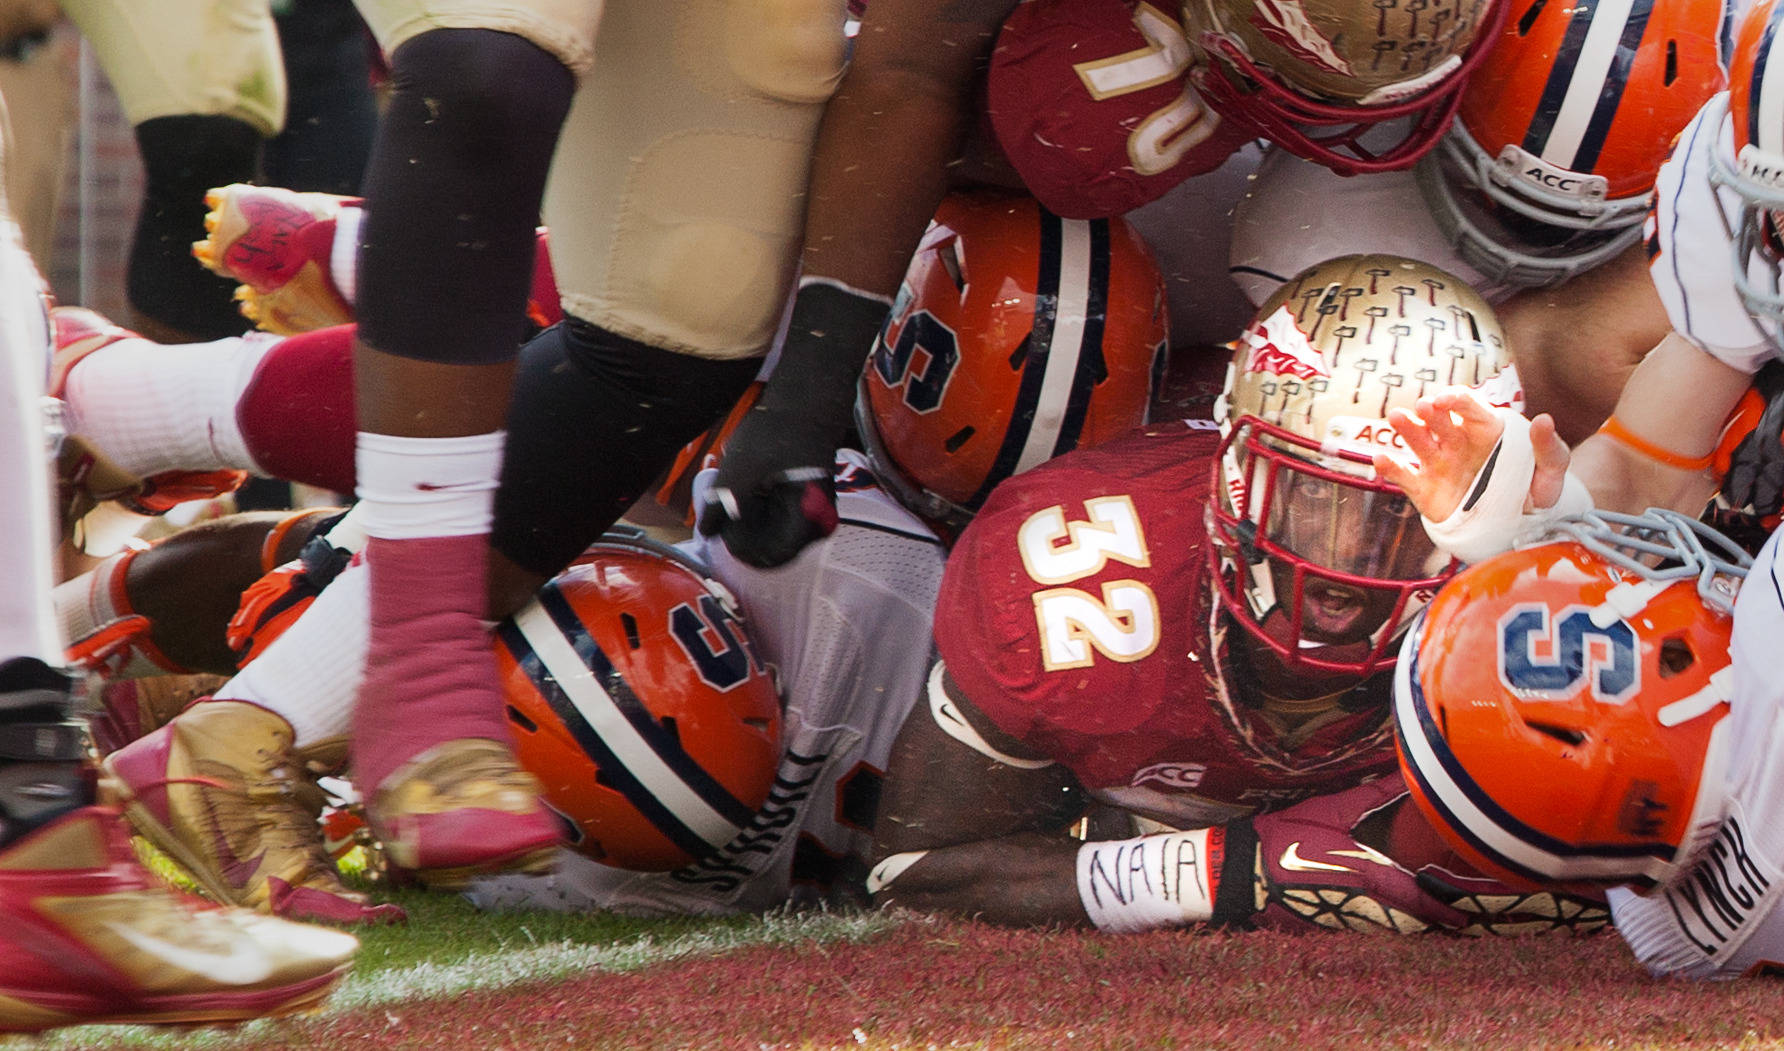 James Wilder, Jr. (32) looks up after scoring a touchdown during FSU Football's 59-3 win over Syracuse on Saturday, November 16, 2013 in Tallahassee, Fla. Photo by Mike Schwarz.